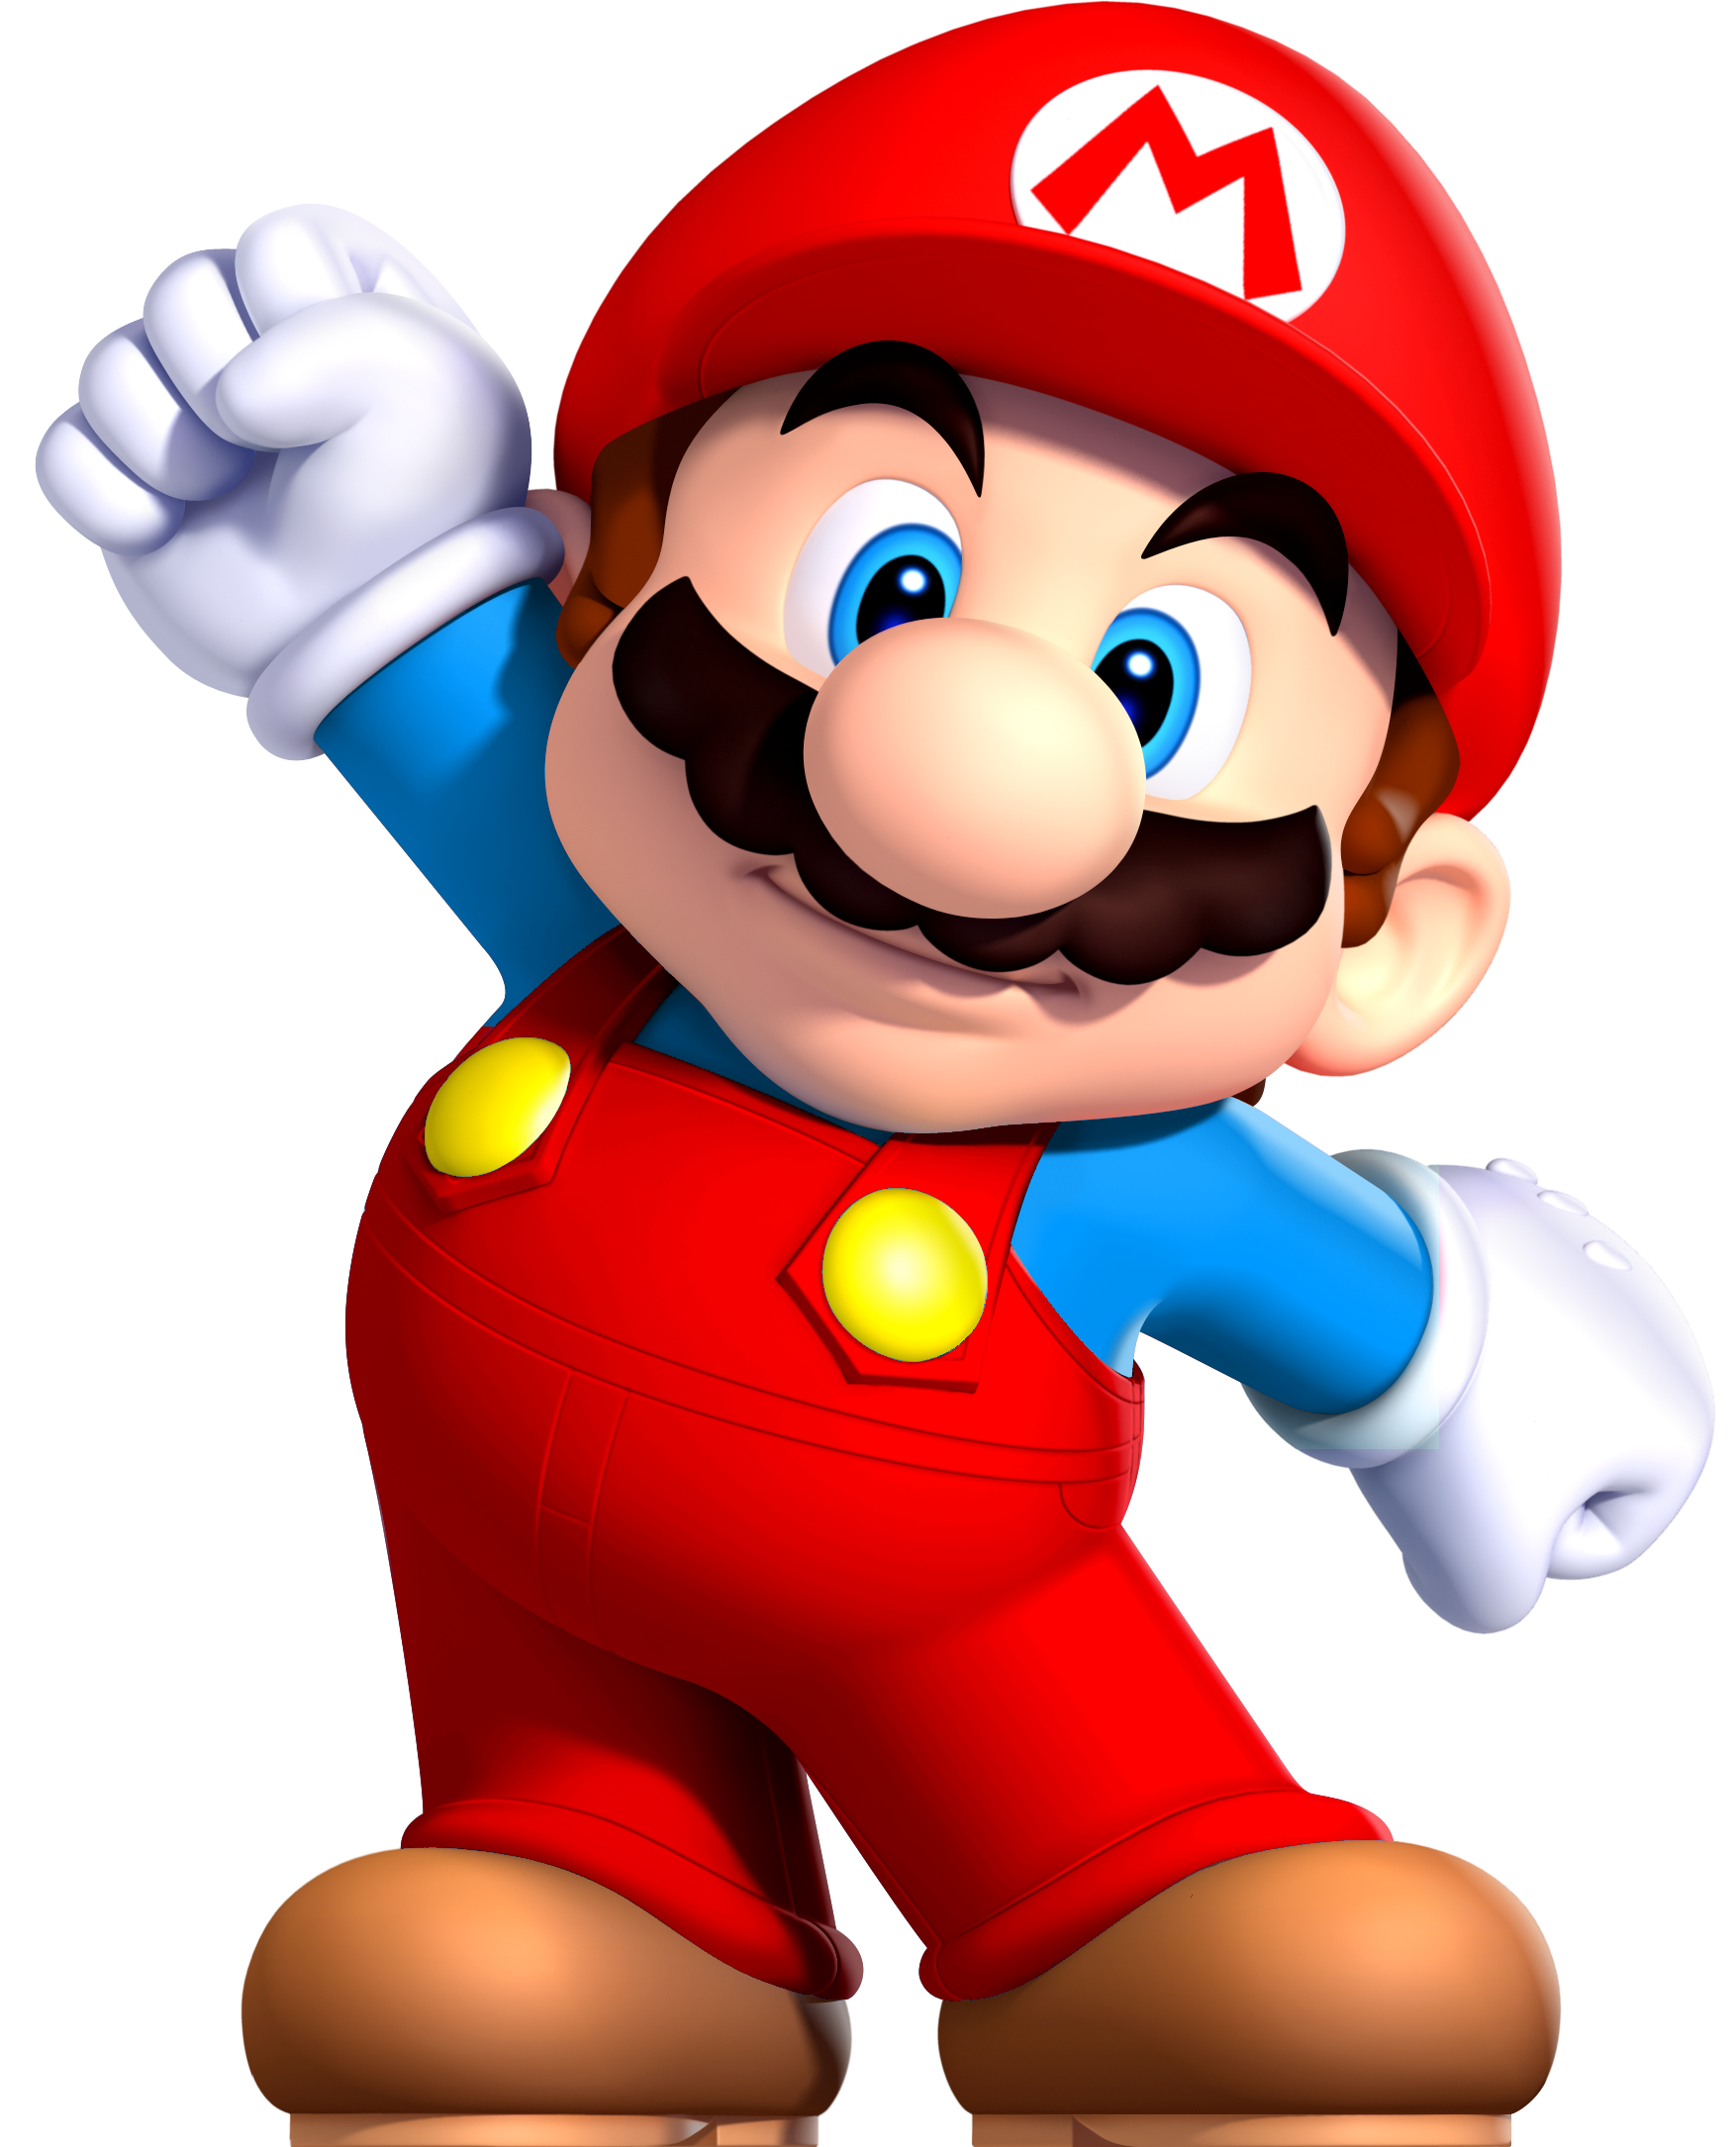 graphic free stock transparent mario old school #106064650